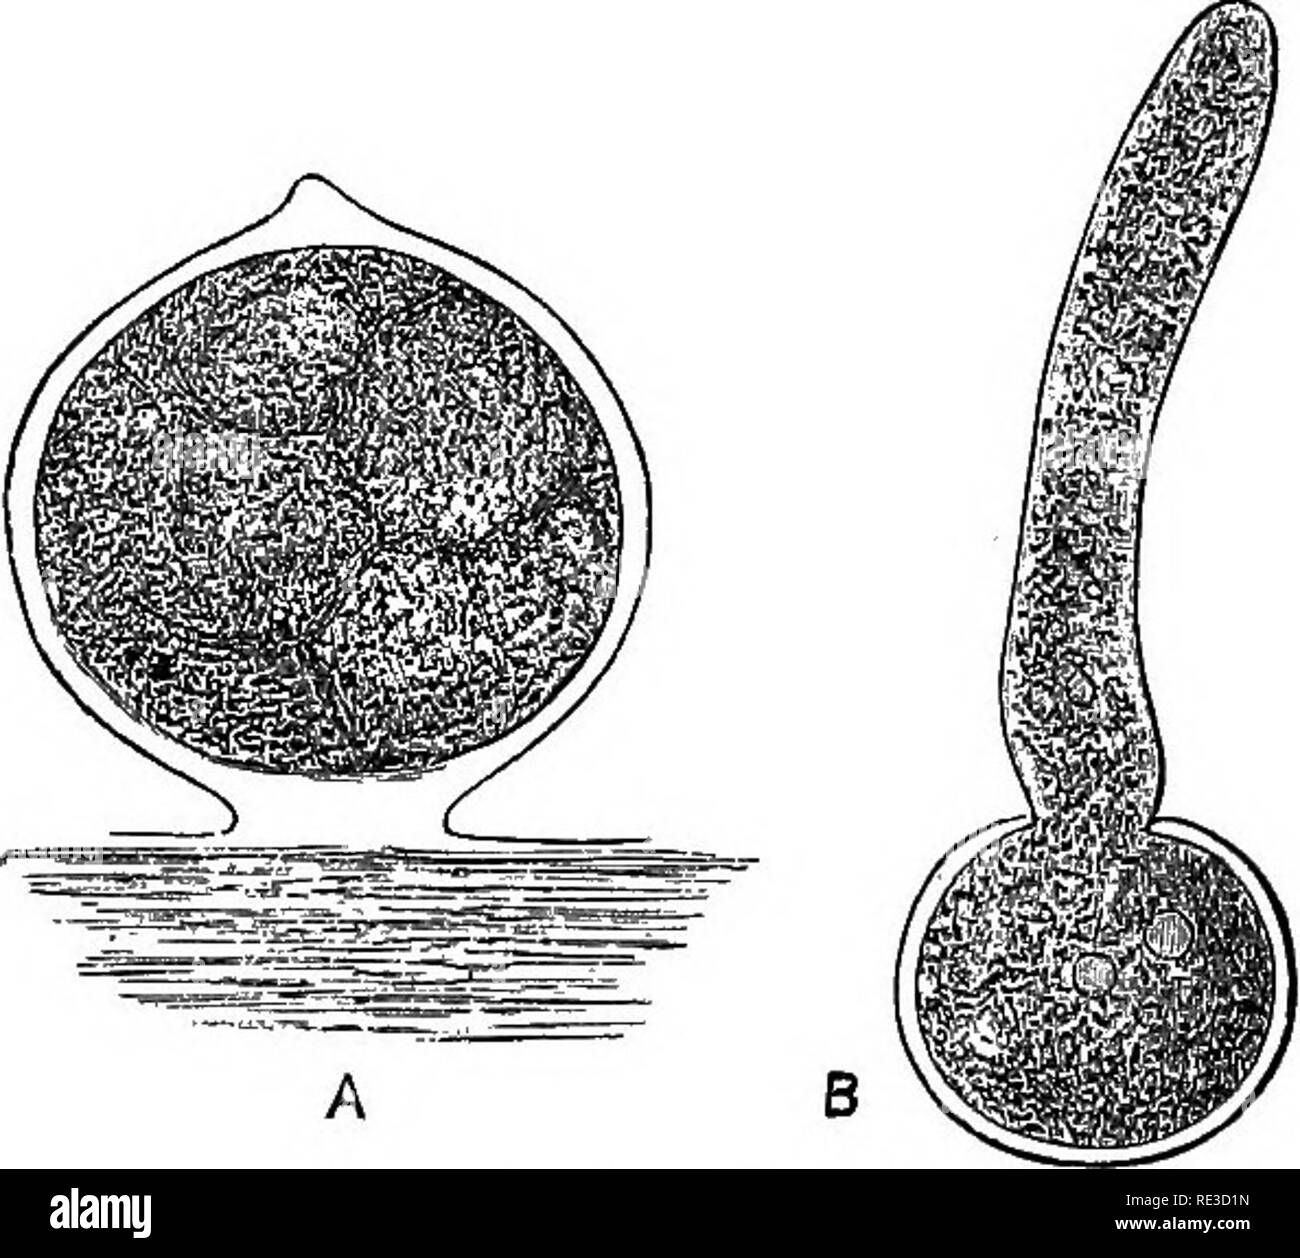 . A handbook of cryptogamic botany. Cryptogams. MULTINUCLEATA': 283 the germinating tube which springs directly from a zoospore. Most of the species are monoecious, and the oogones and antherids are usually found verj near together. The antherids are the terminal portions of slender branches, in some species straight, in others curved and more or less resembling horns or hooks. They contain but little chlorophyll, and the protoplasm breaks up into a large number of biciliated anthero- zoids, which escape through the ruptured apex. The two cilia are of unequal length, and point, one backwards,  - Stock Image